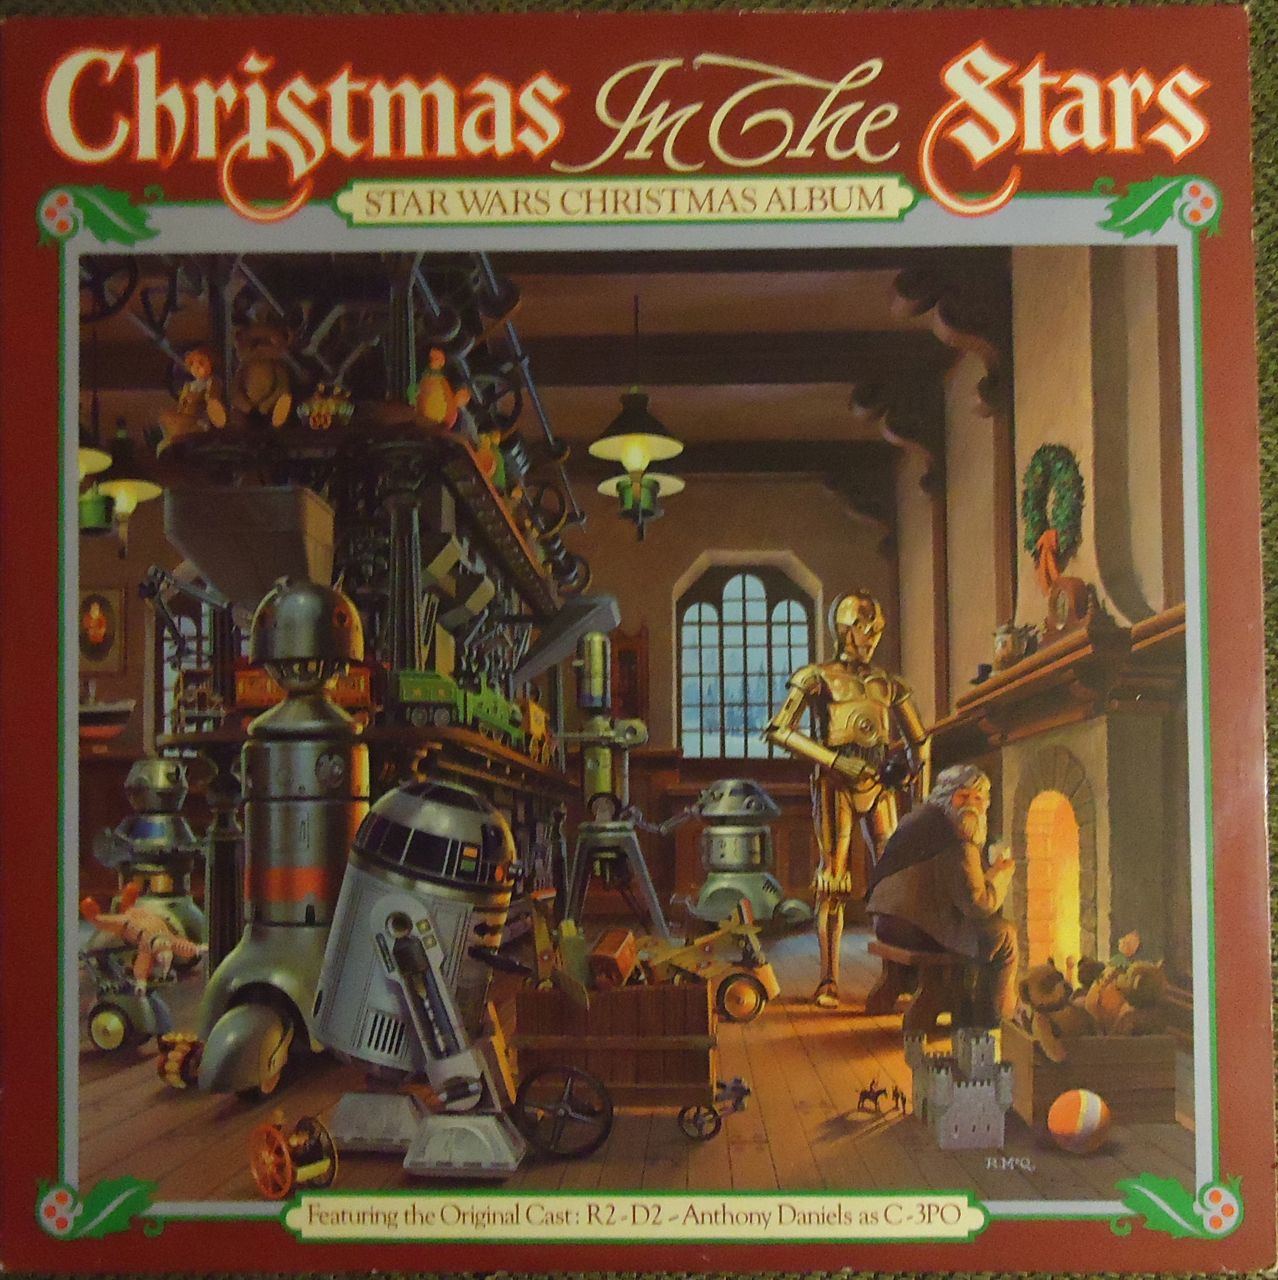 Hymies Vintage Records · Rrrrgghhh! Novelty Christmas Songs